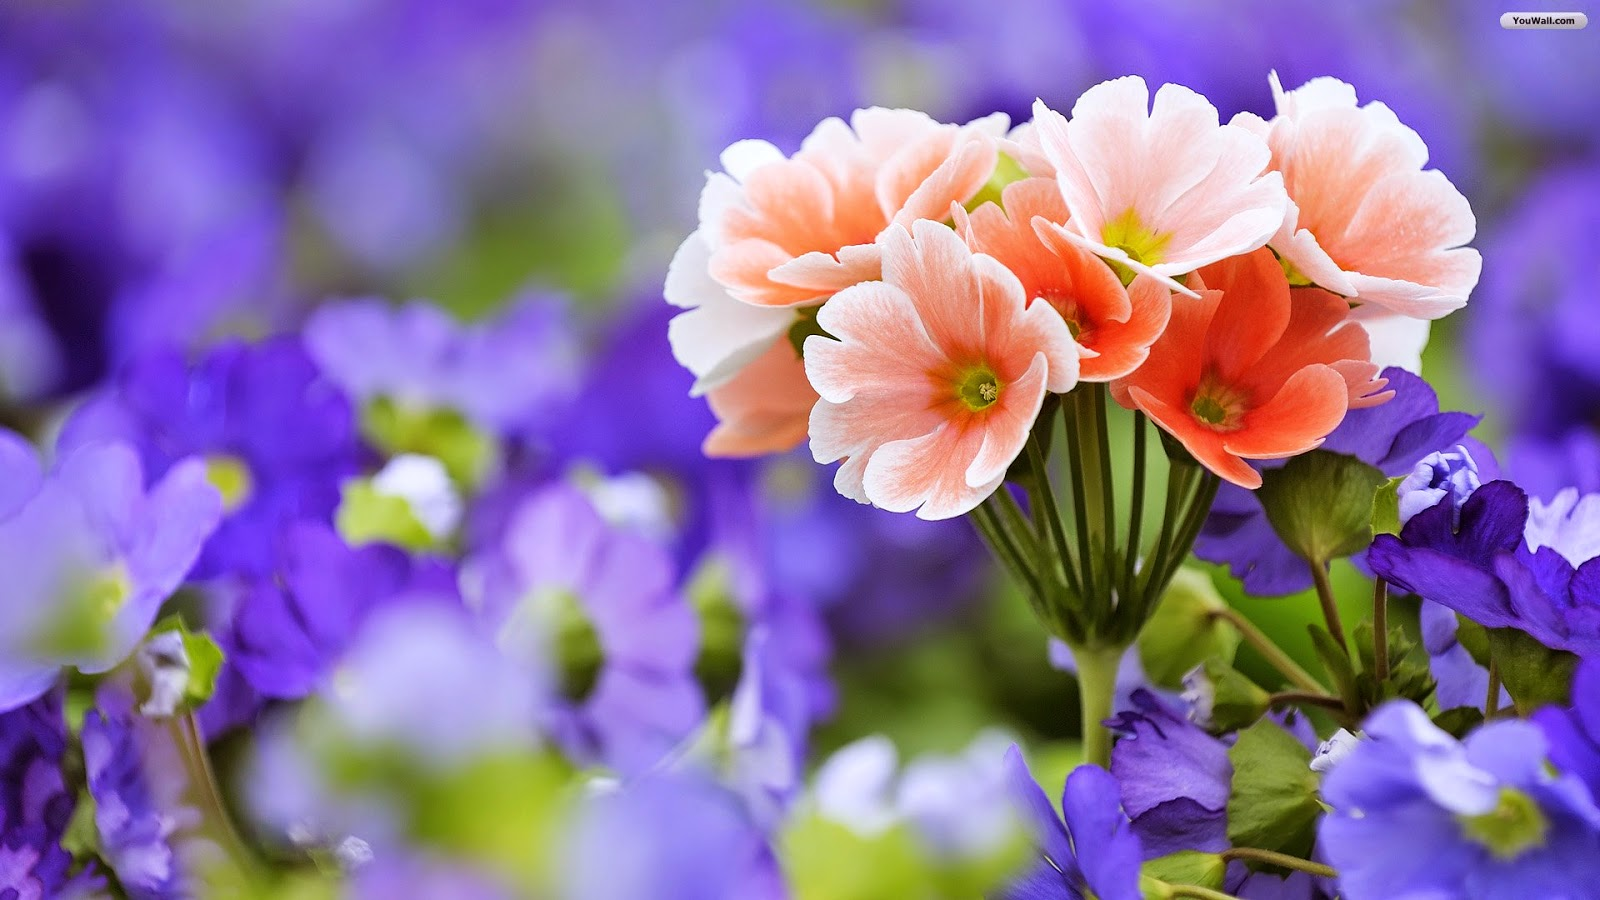 Cool FunPedia: The Most Beautiful Flowers In The World |Most Magnificent Flowers